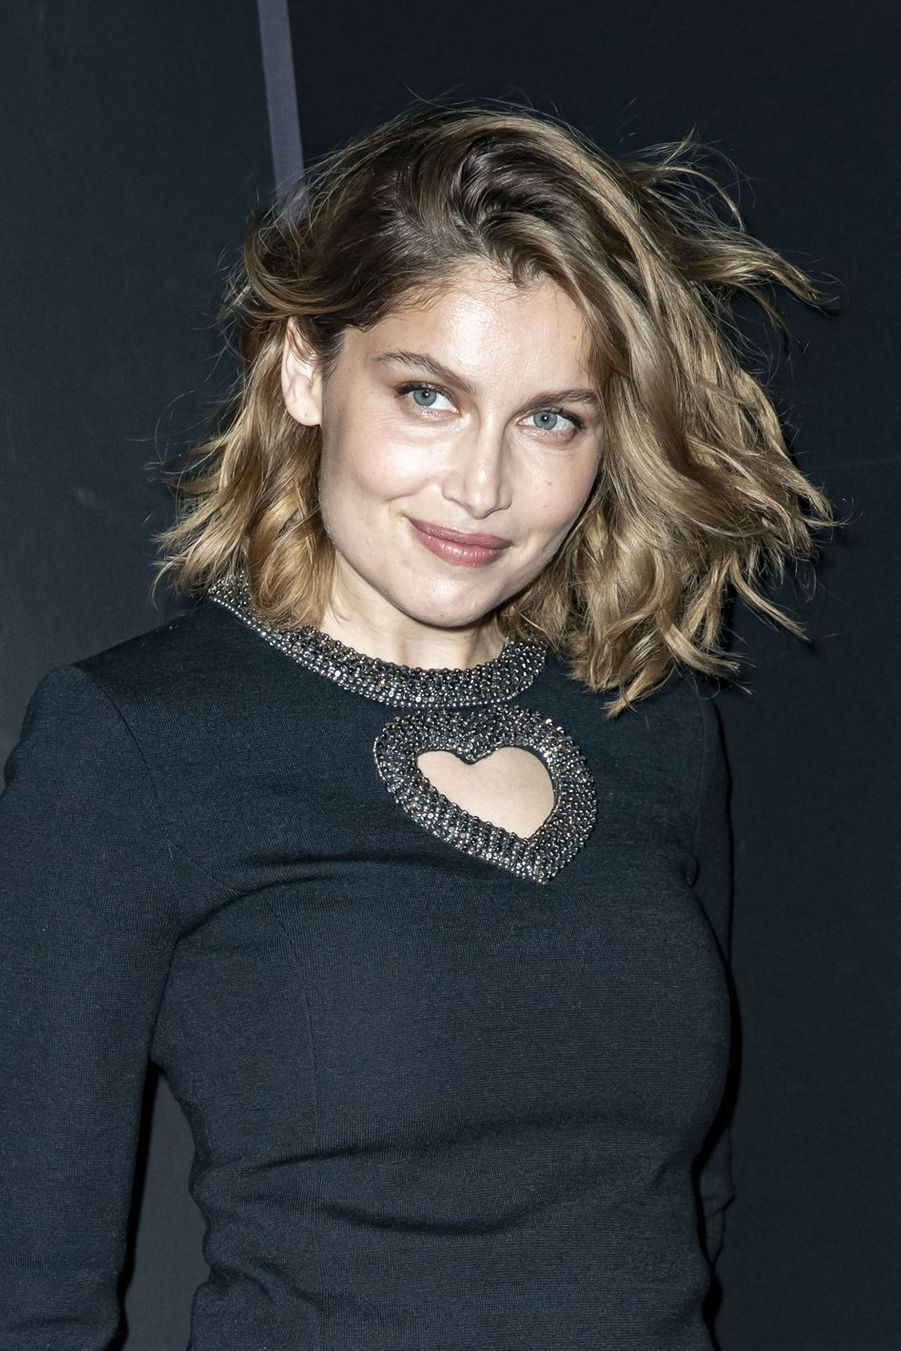 Laetitia Casta au défilé Saint Laurent lors de la Fashion Week de Paris le 26 février 2019